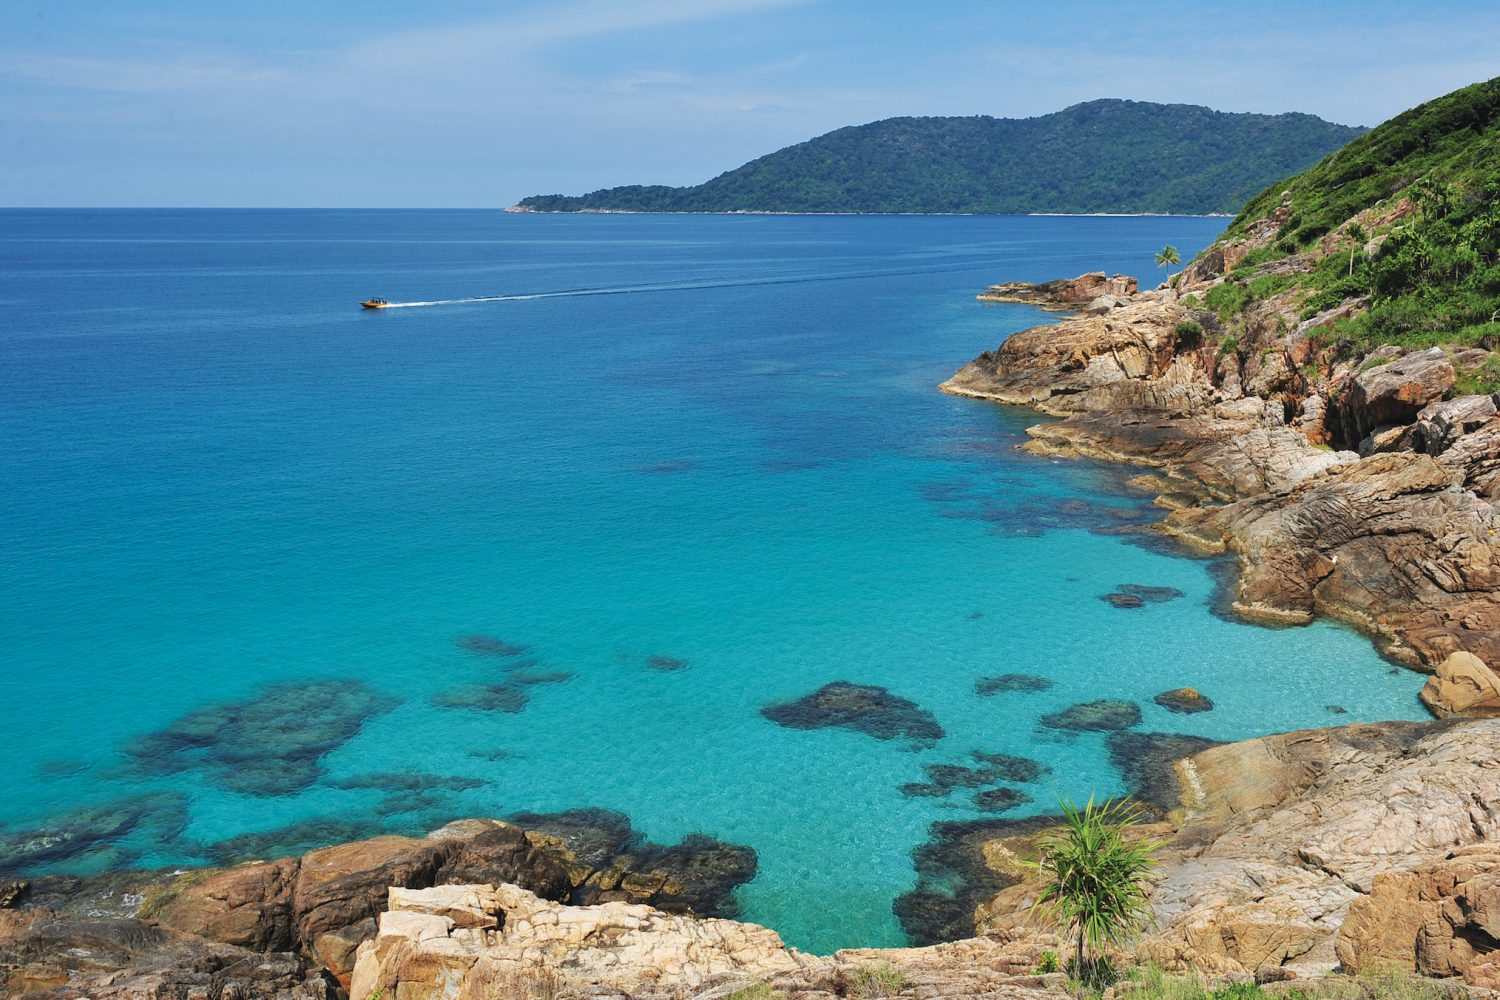 Panoramic view of the turquoise sea surround Perhentian Kecil Island